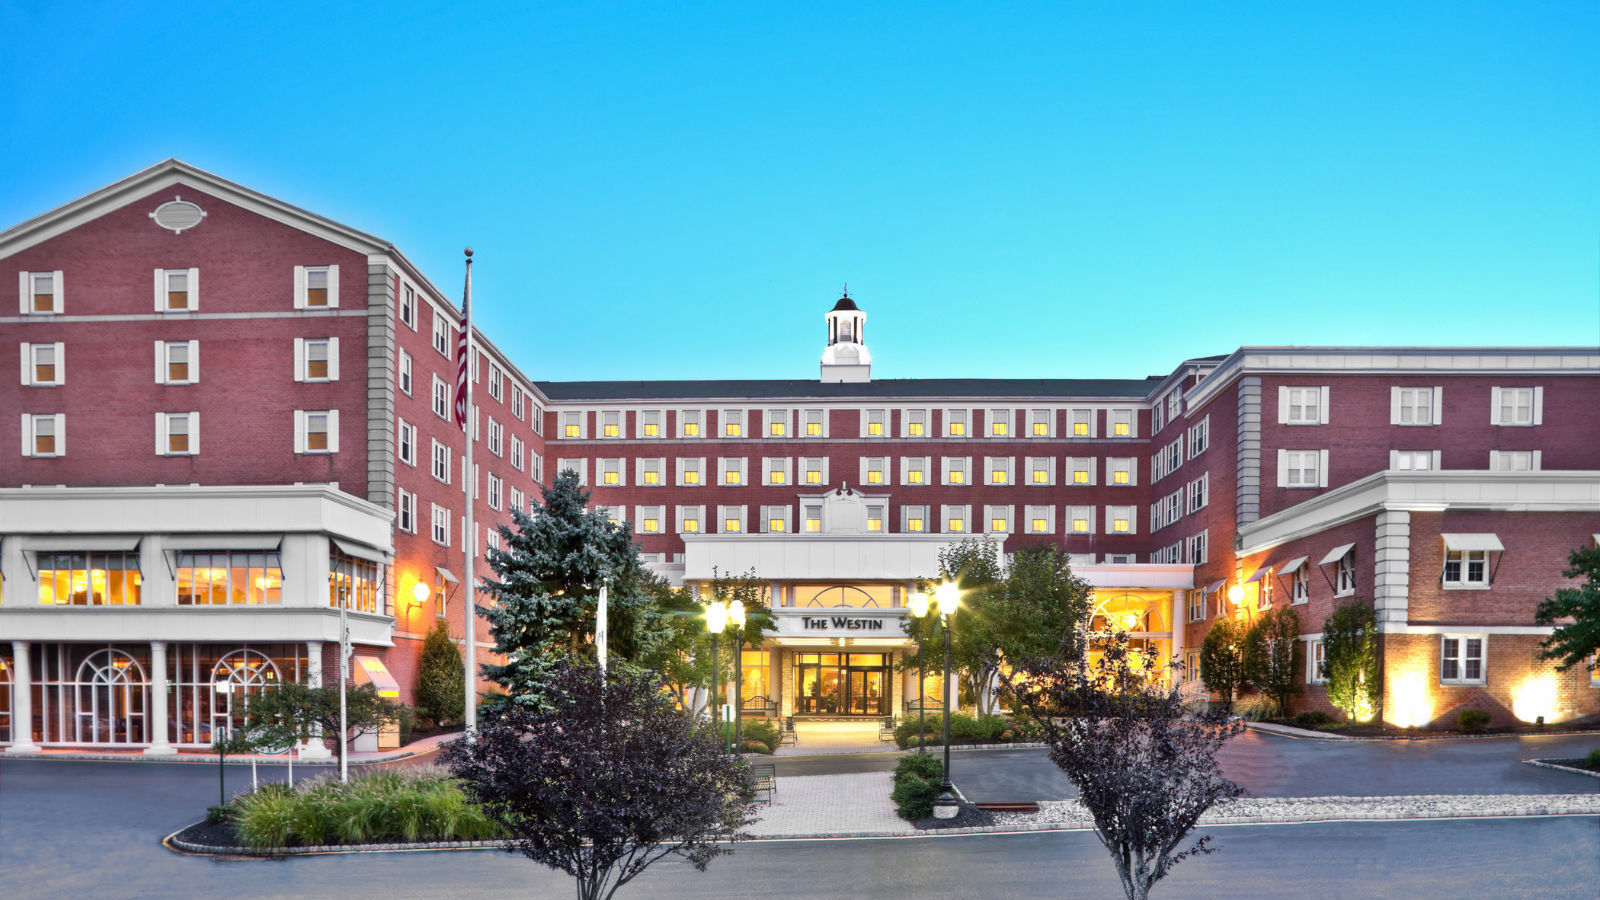 The Westin Governor Morris Morristown Exterior